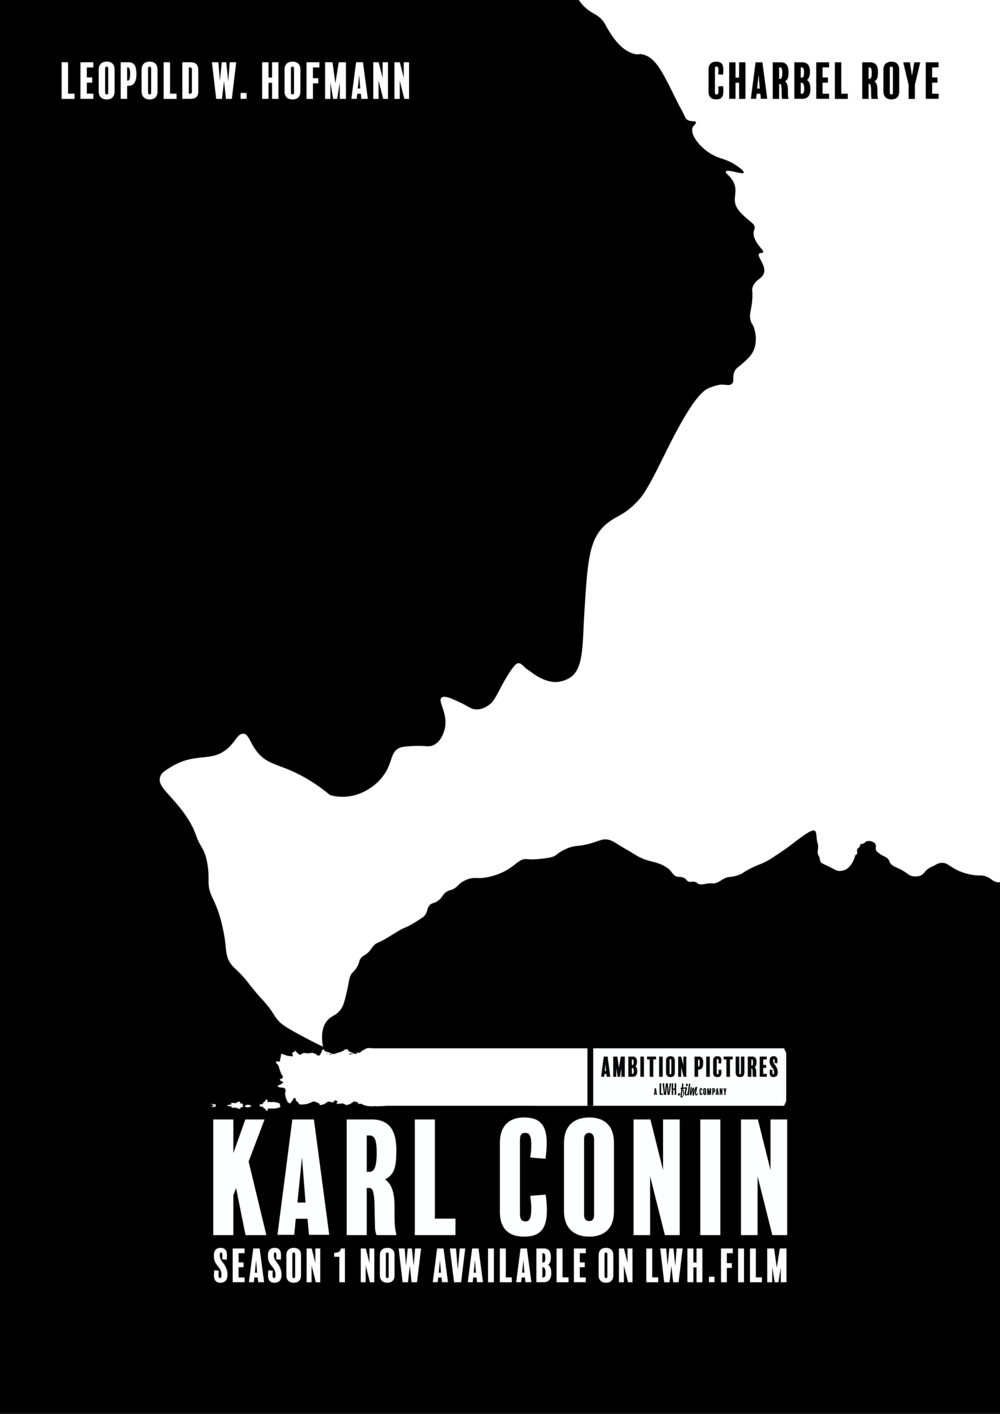 KARL CONIN (Theatrical Release Poster).png